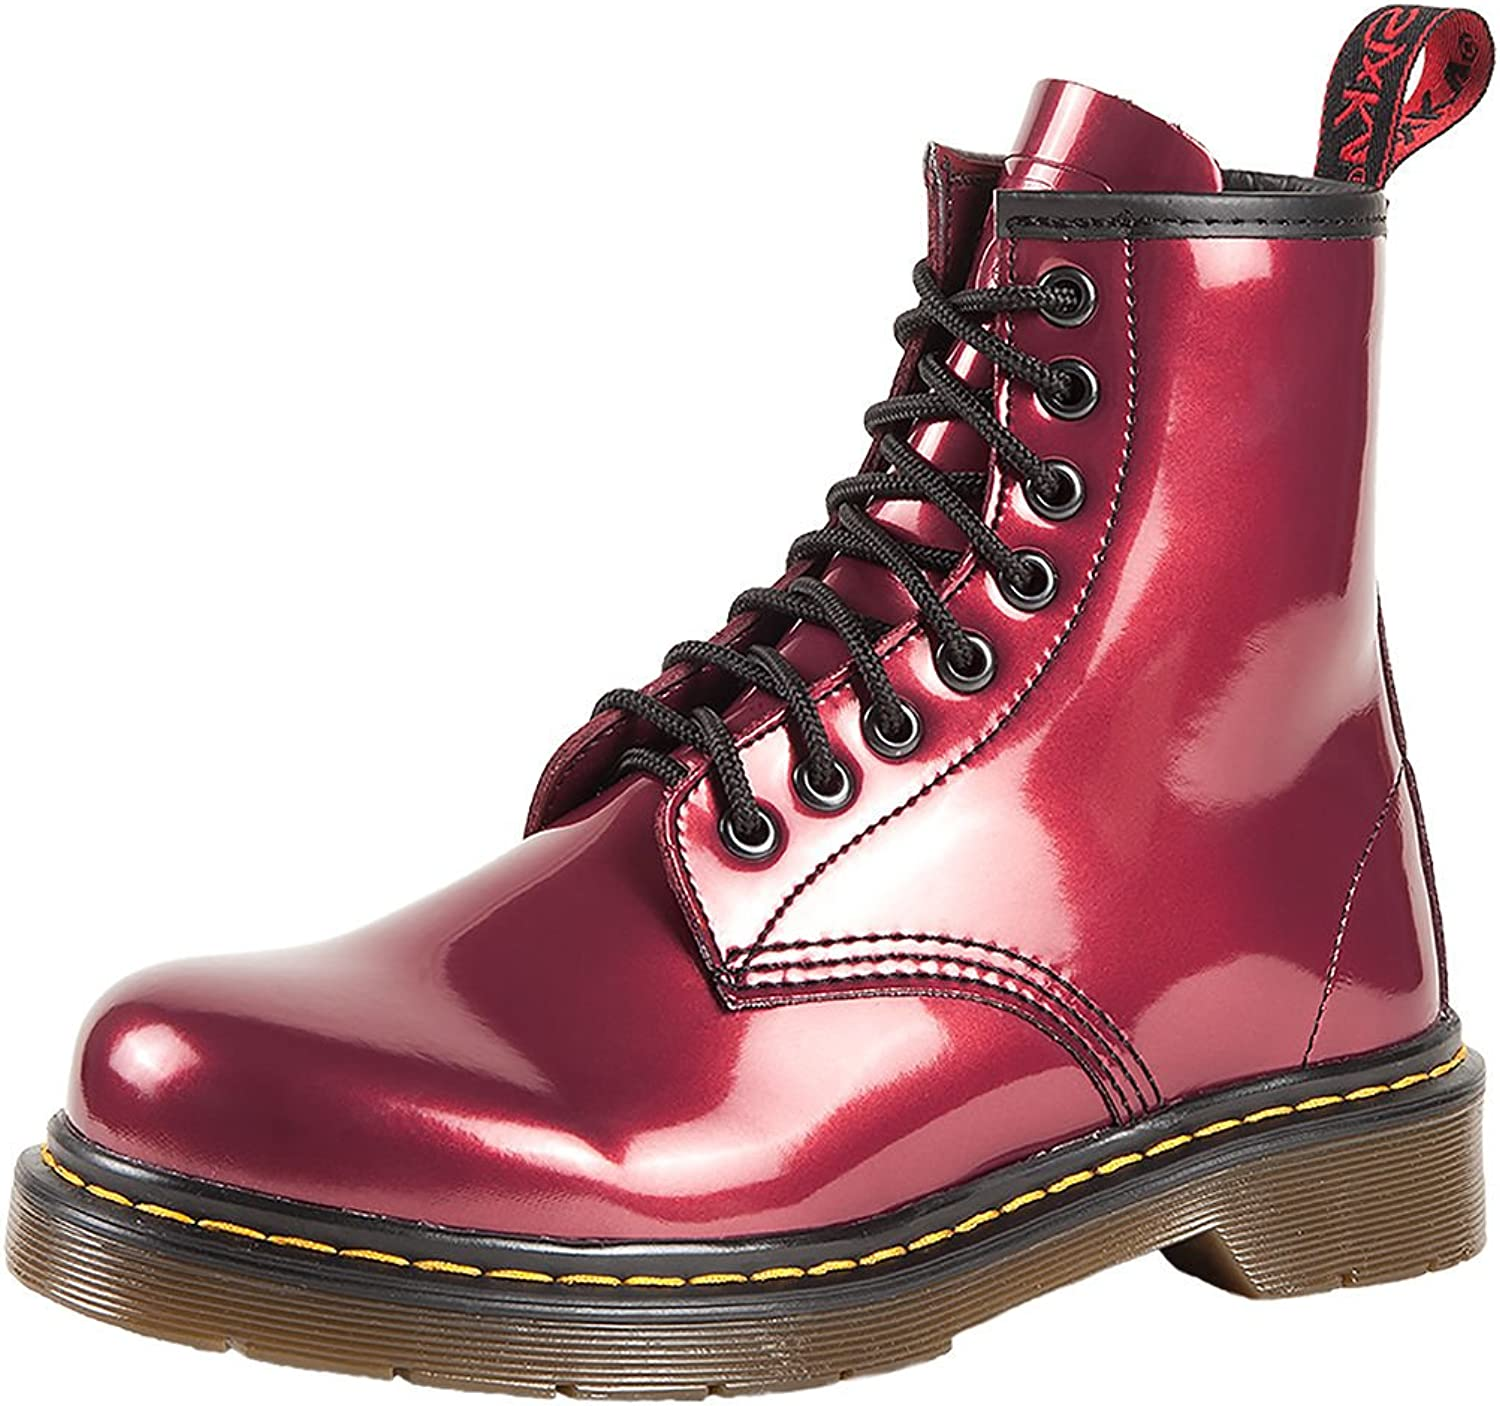 SK7 Women's Hot Stylish Coventry Gloss Leather Fashion Ankle Boots Tinto Red - 9.5